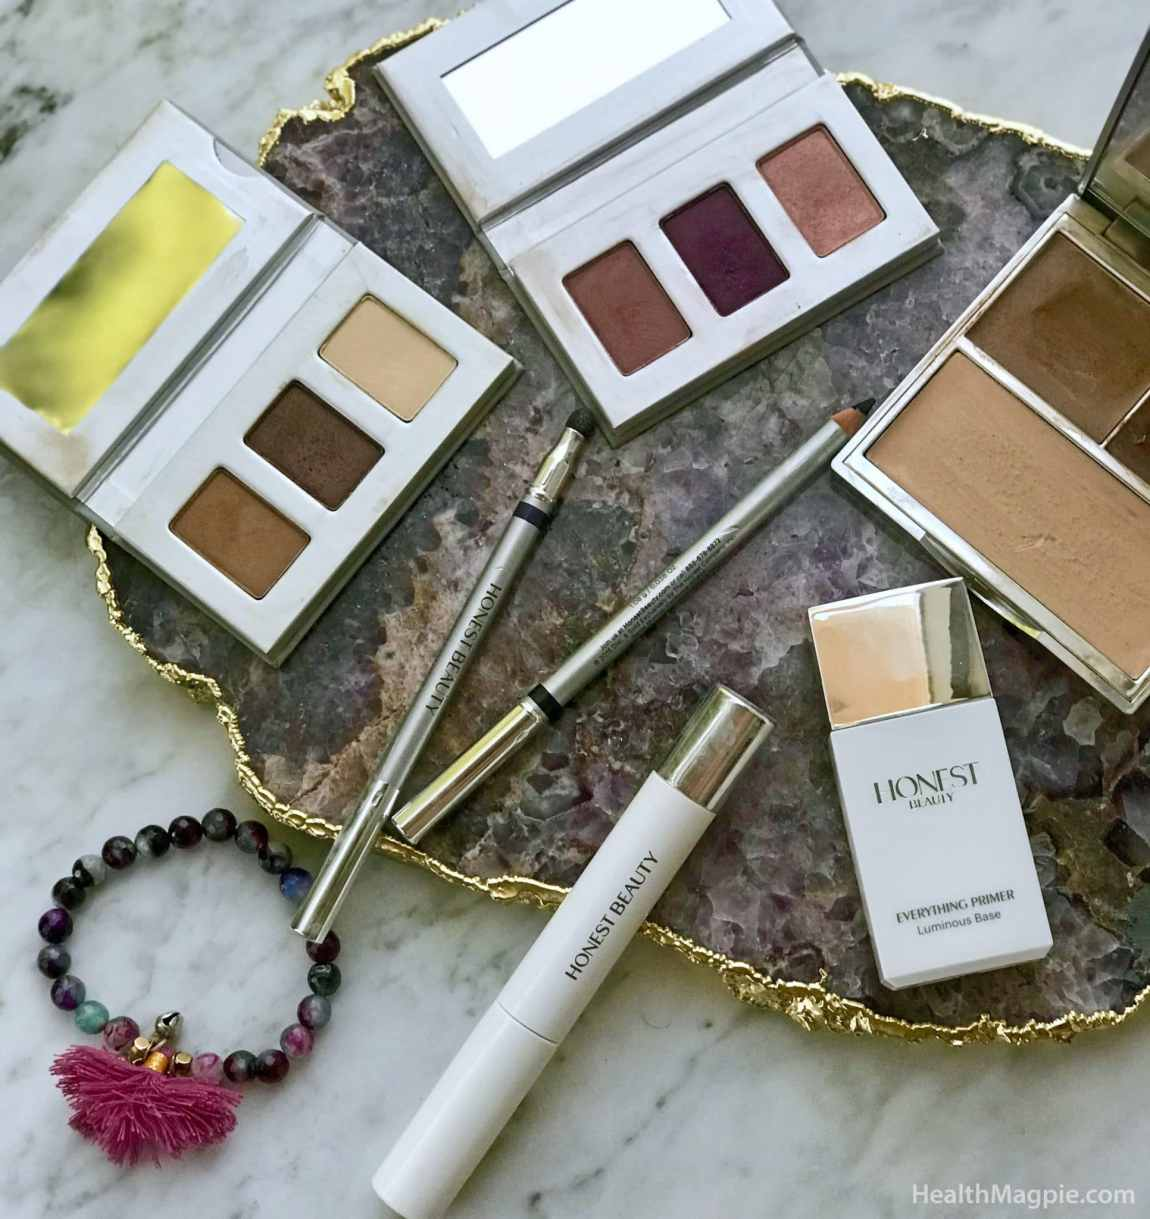 Pictures and reviews of Jessica Alba's Honest Beauty clean beauty and makeup line at target that received a design update and relaunch in 2018